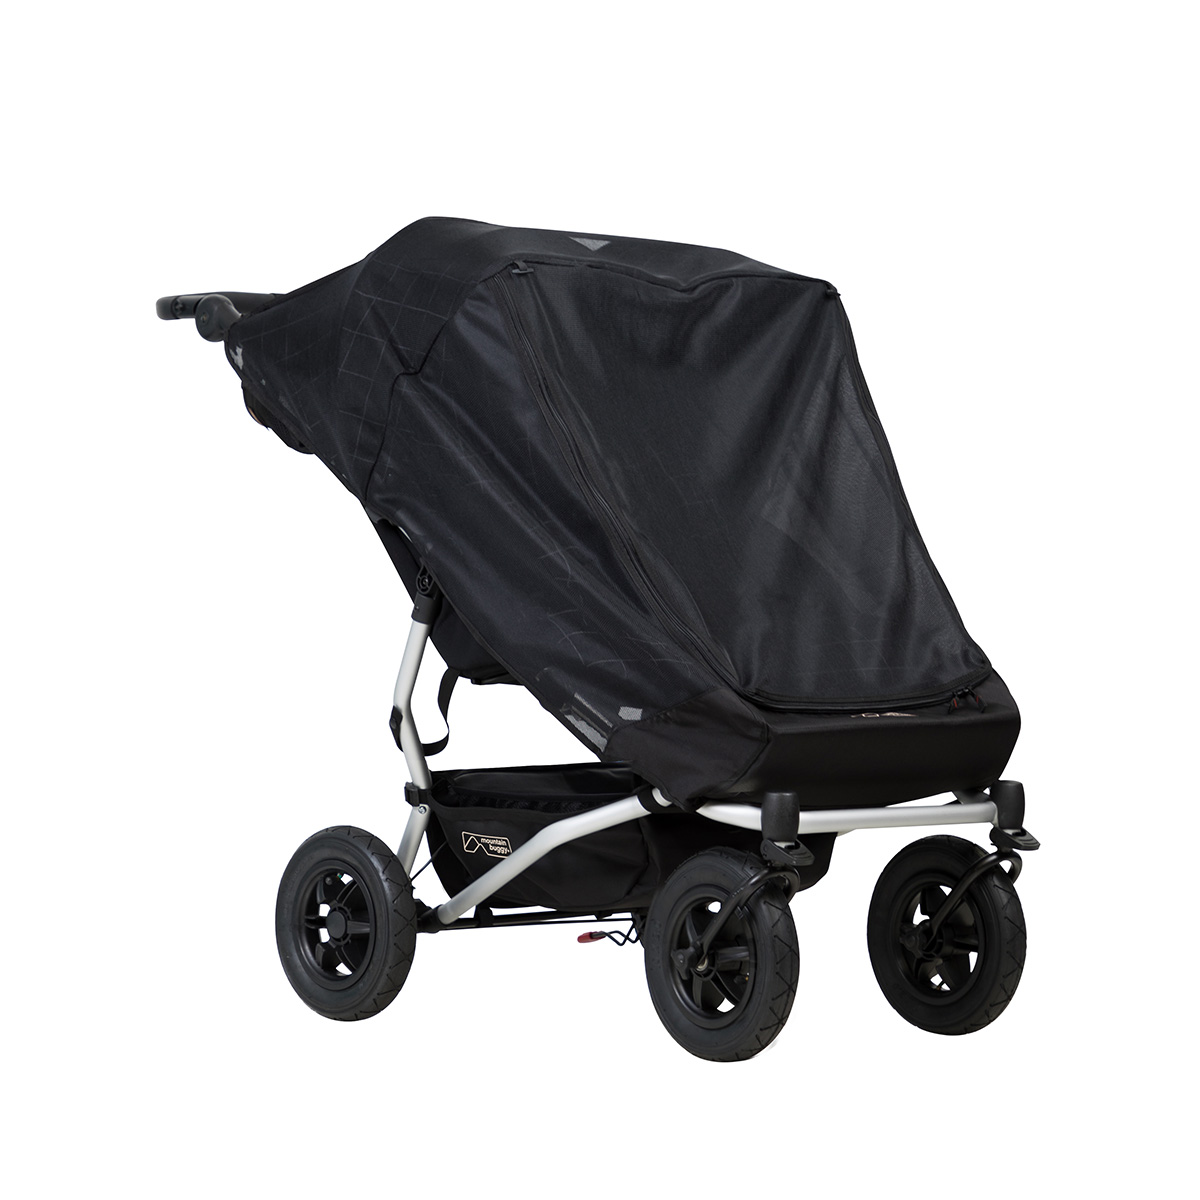 Mountain Buggy Duetsun coverデュエット サンカバー